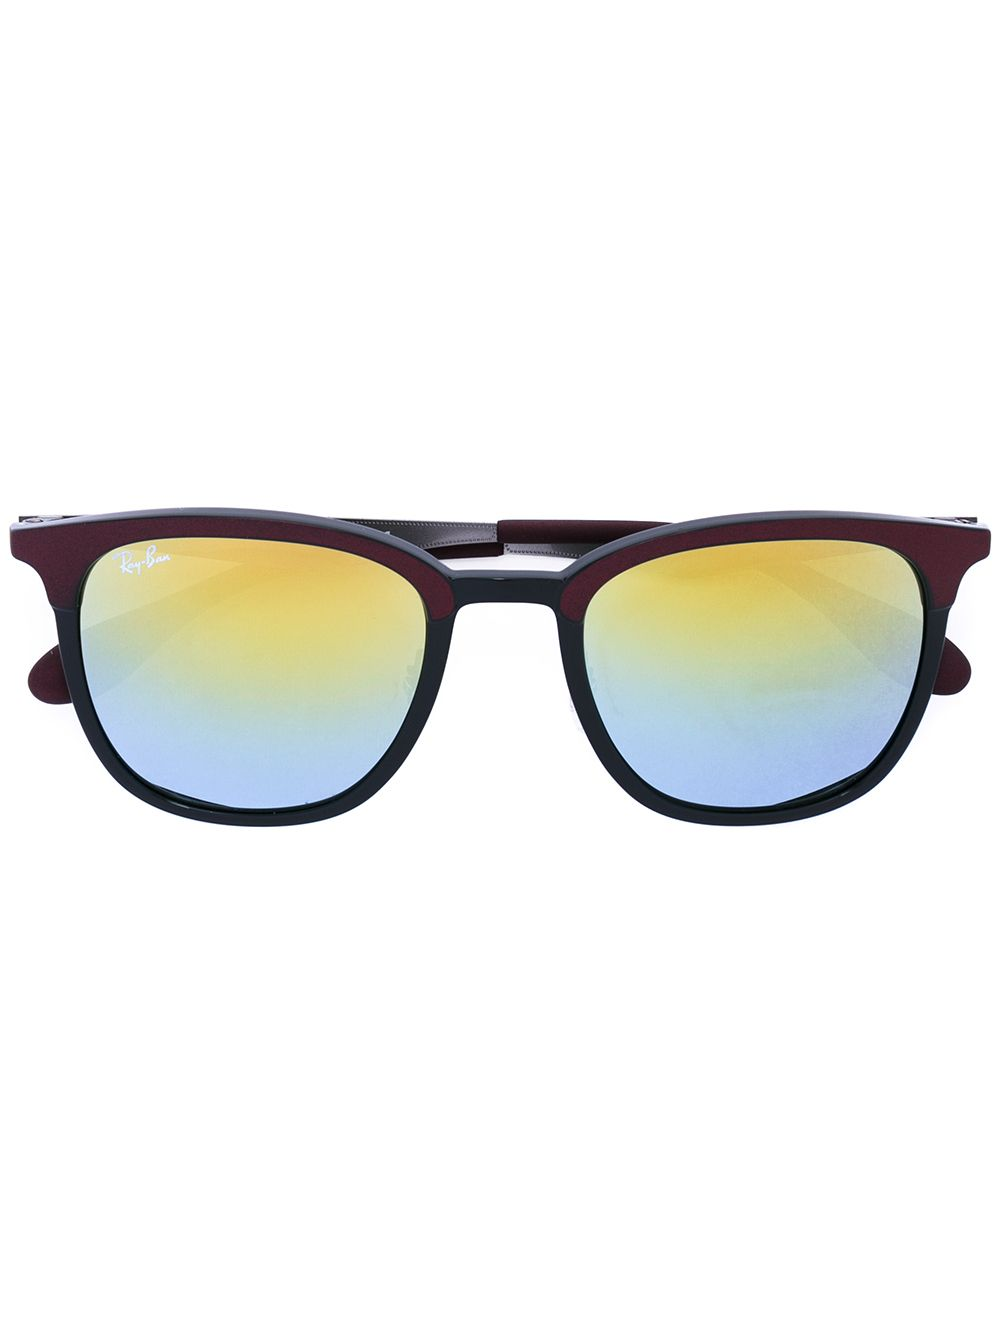 7dcd3c9e9f7 ray-ban-wayfarer-sunglasses-pink-purple-farfetch-com-photo.jpg 1531977354